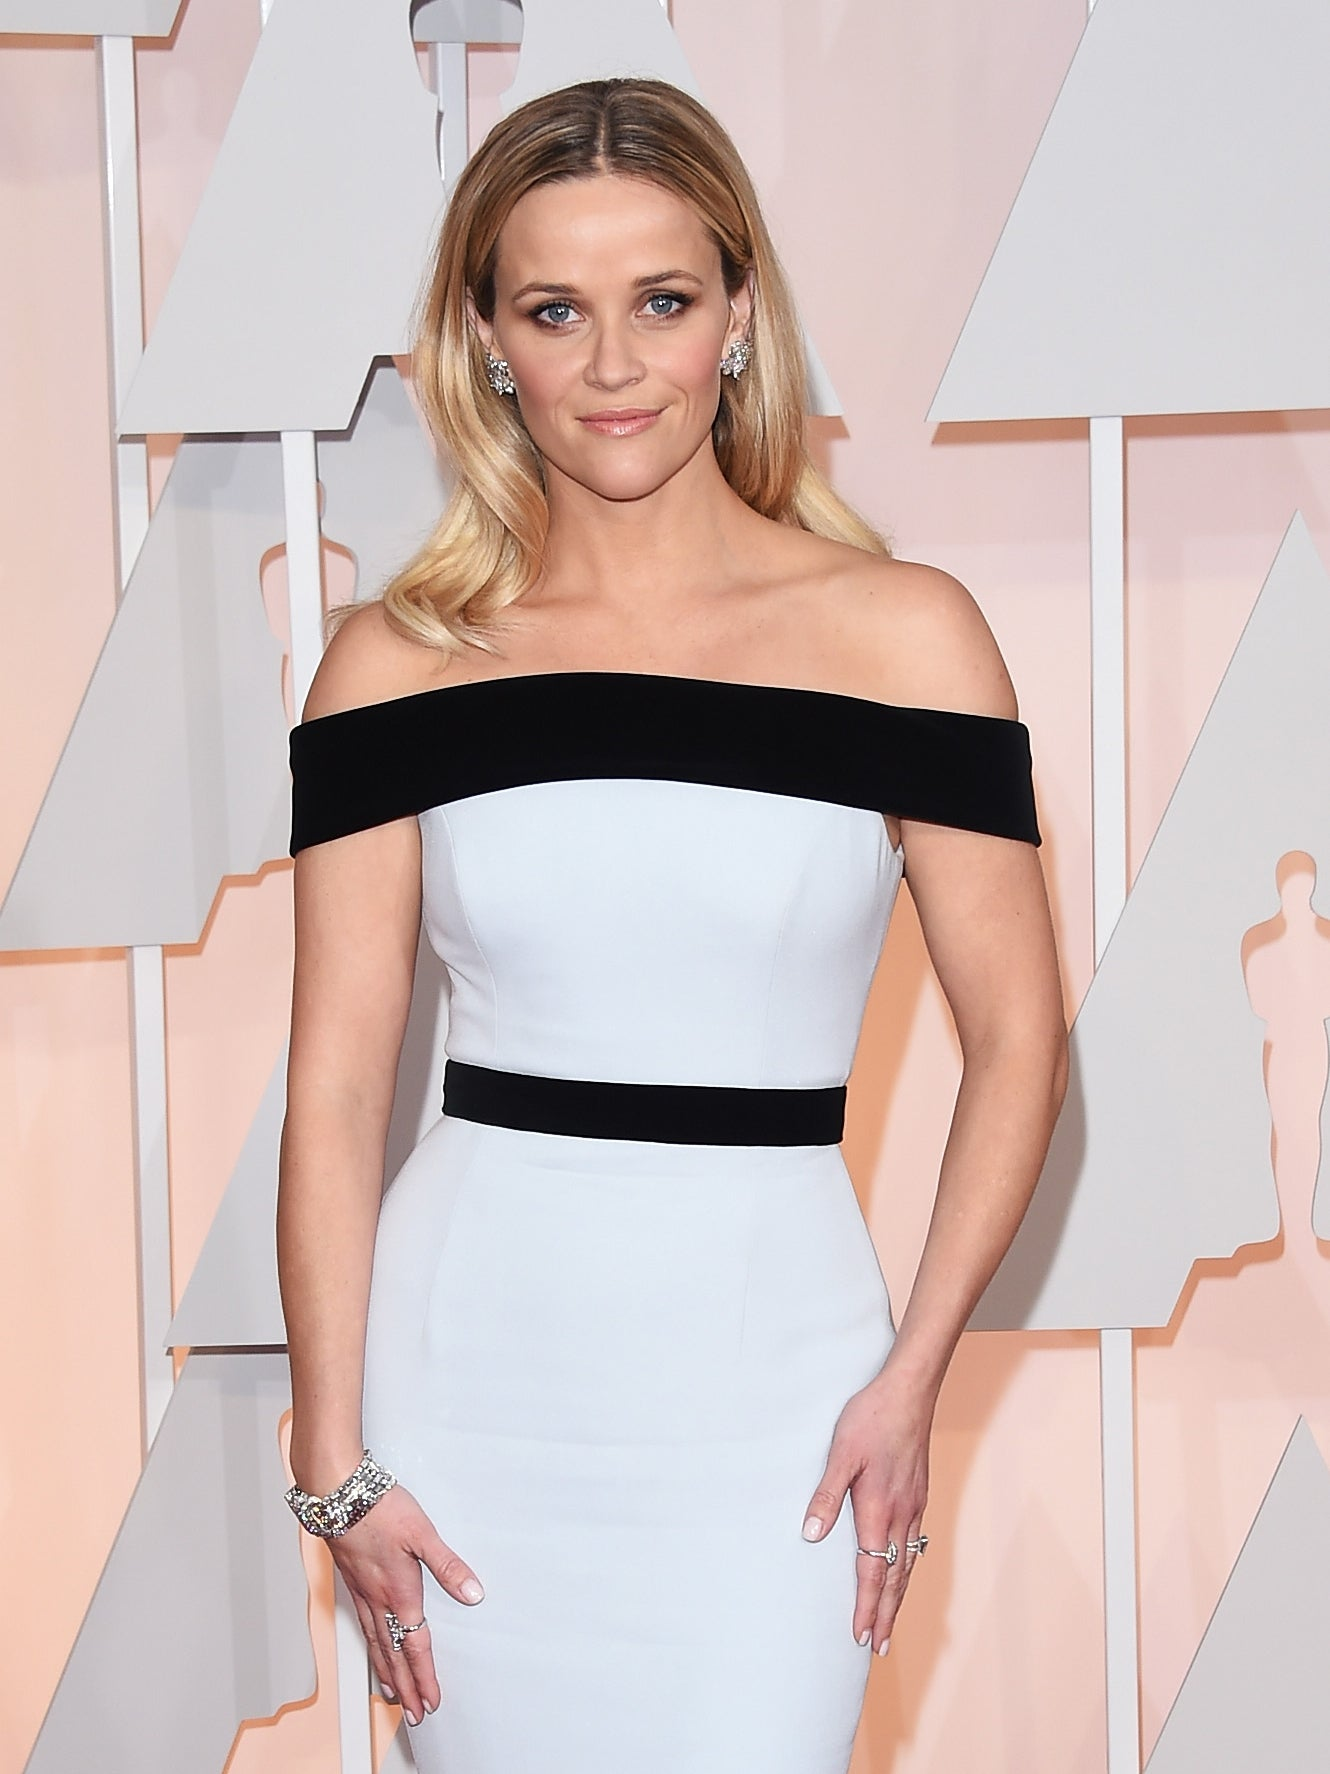 87th Annual Academy Awards – Arrivals